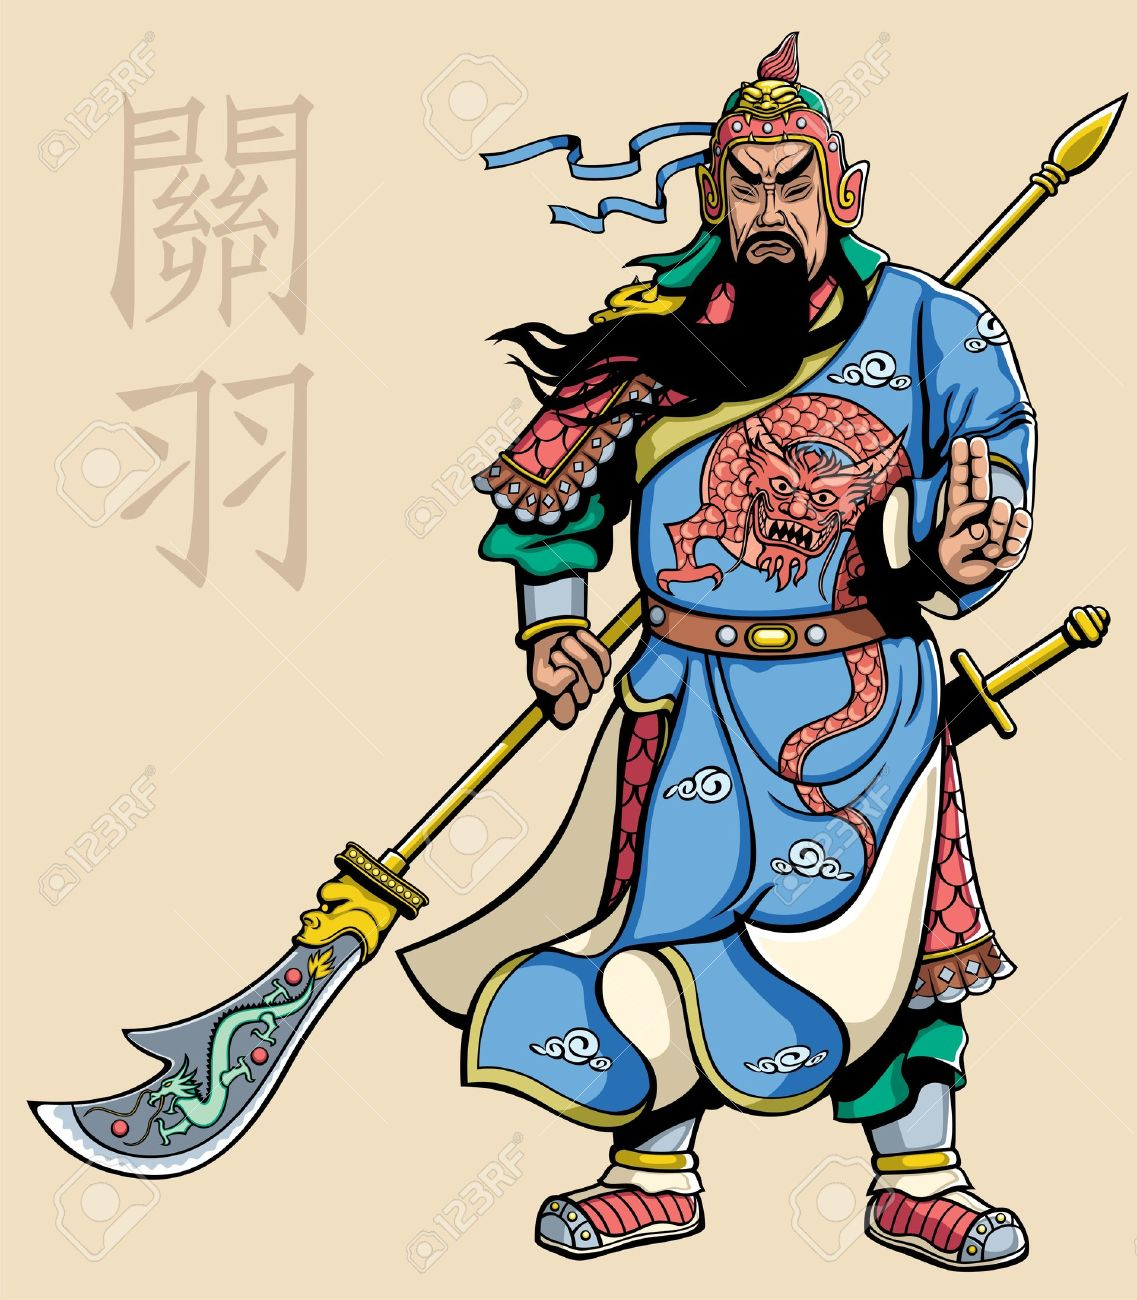 Illustration Of The Legendary Chinese General Guan Yu Royalty Free.